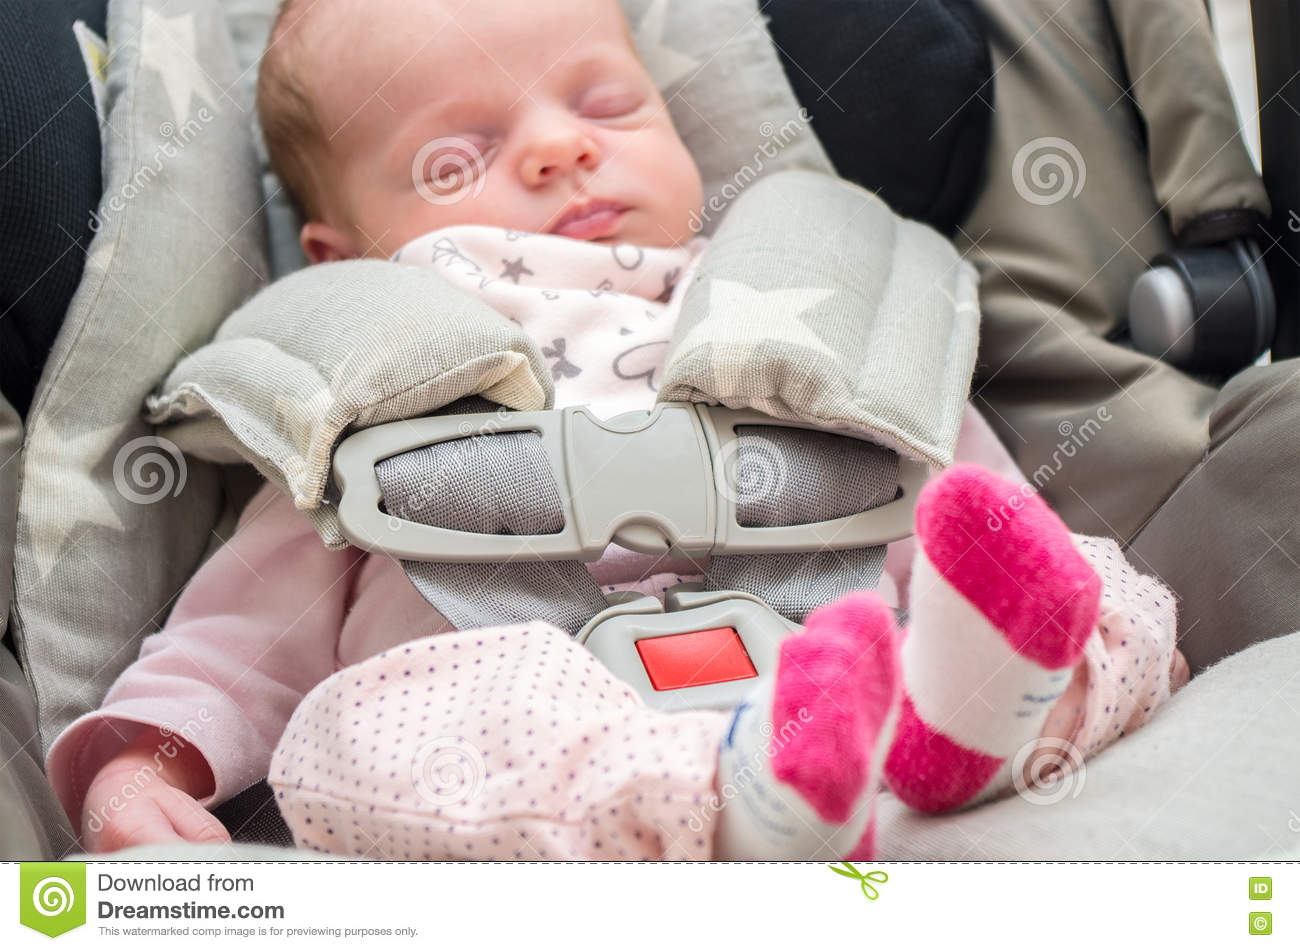 Baby Girl Infant Car Seats: Newborn Baby Girl In A Car Seat Stock Photo